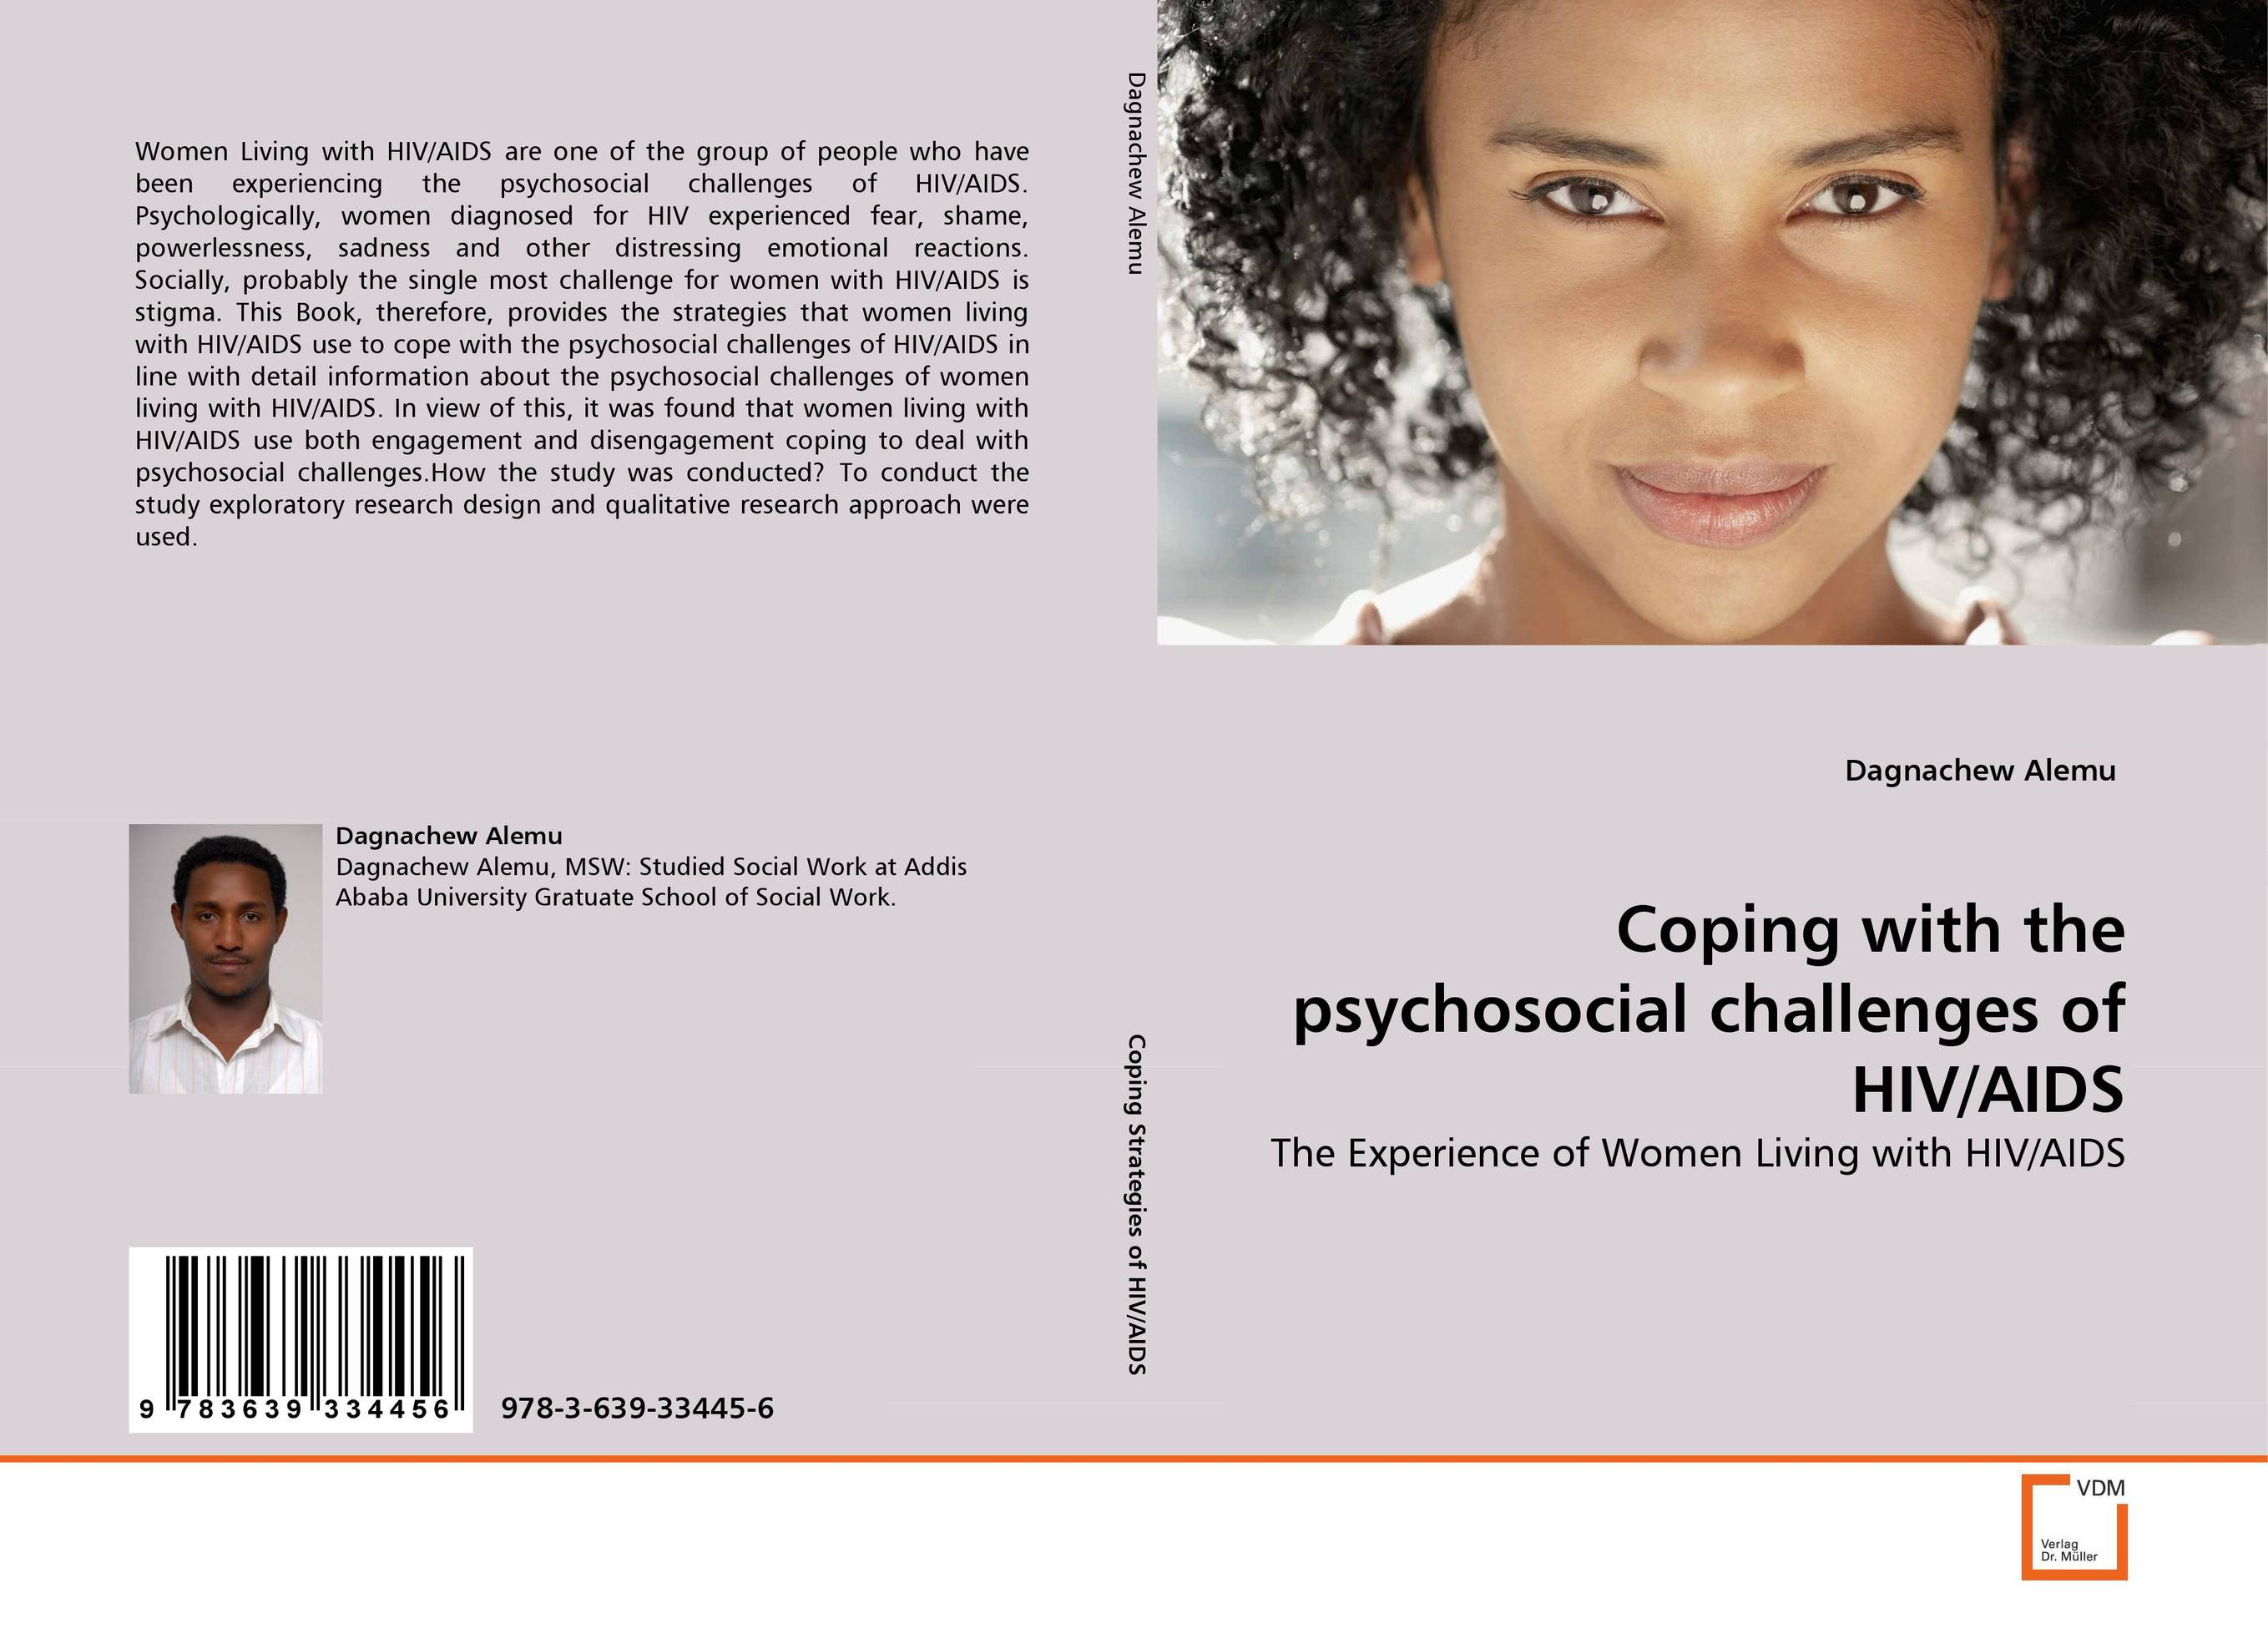 Coping with the psychosocial challenges of HIV/AIDS physical therapy care for people living with hiv aids